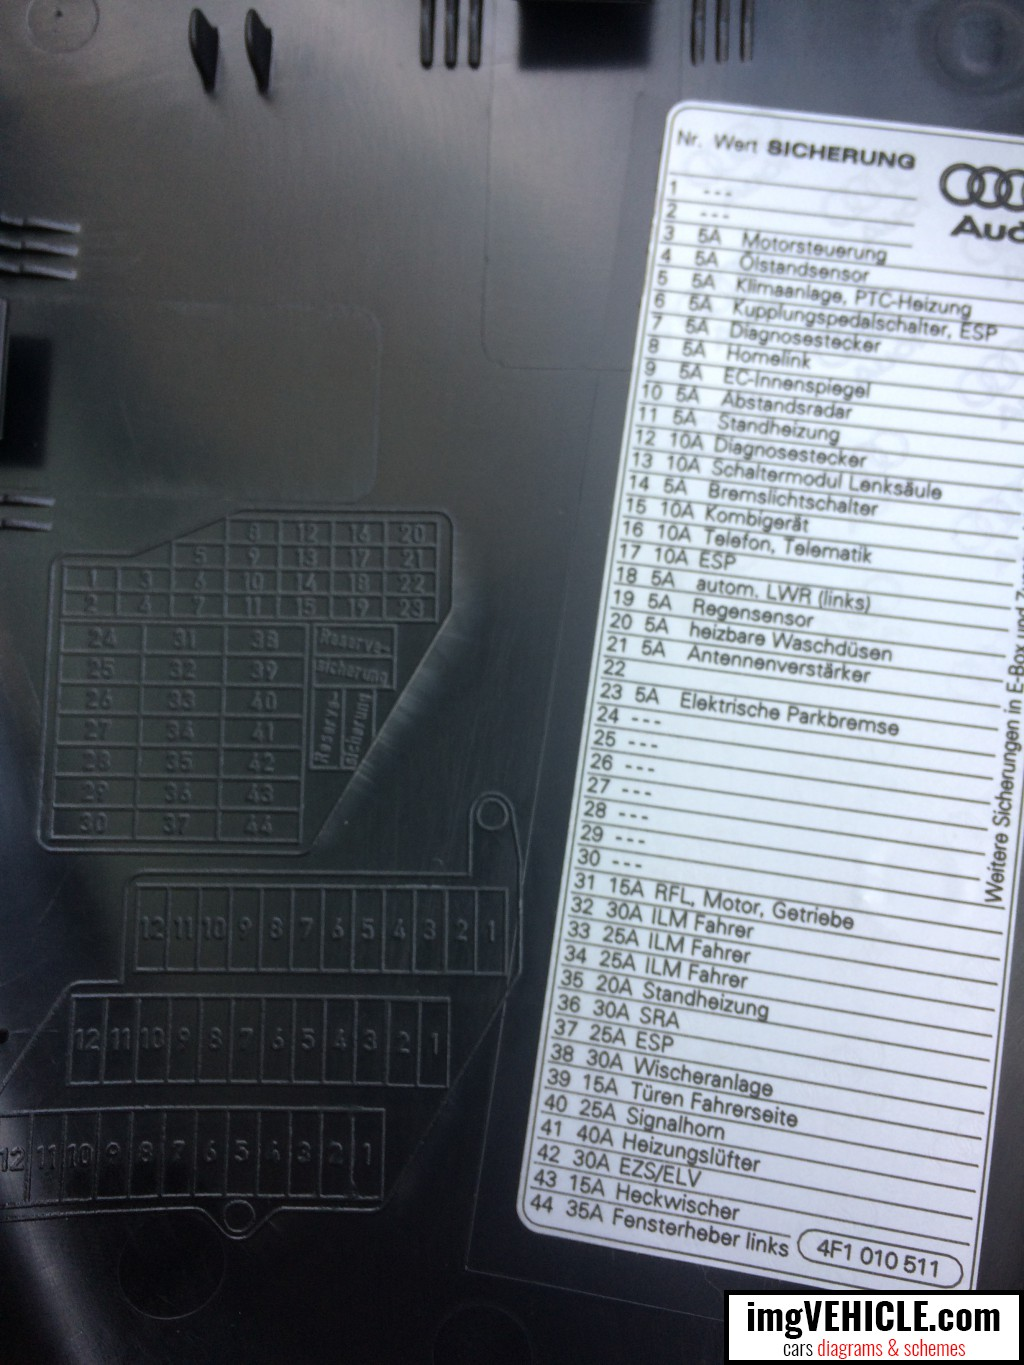 Audi A6 C6 Fuse Box Diagrams Schemes 2011 Chrysler 200 Diagram Dash Panel